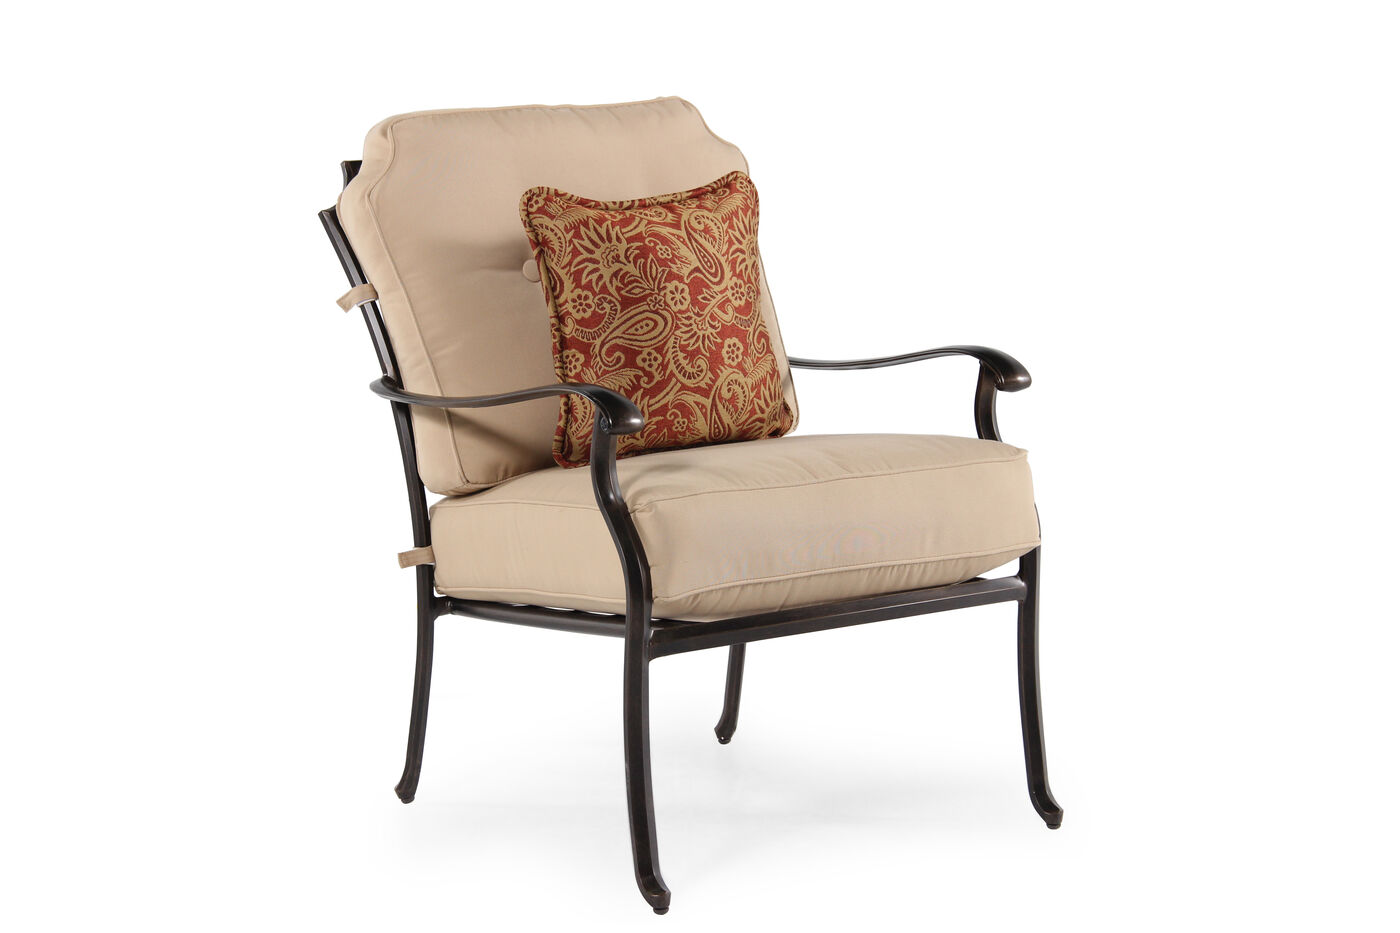 Agio Heritage Select Patio Lounge Chair